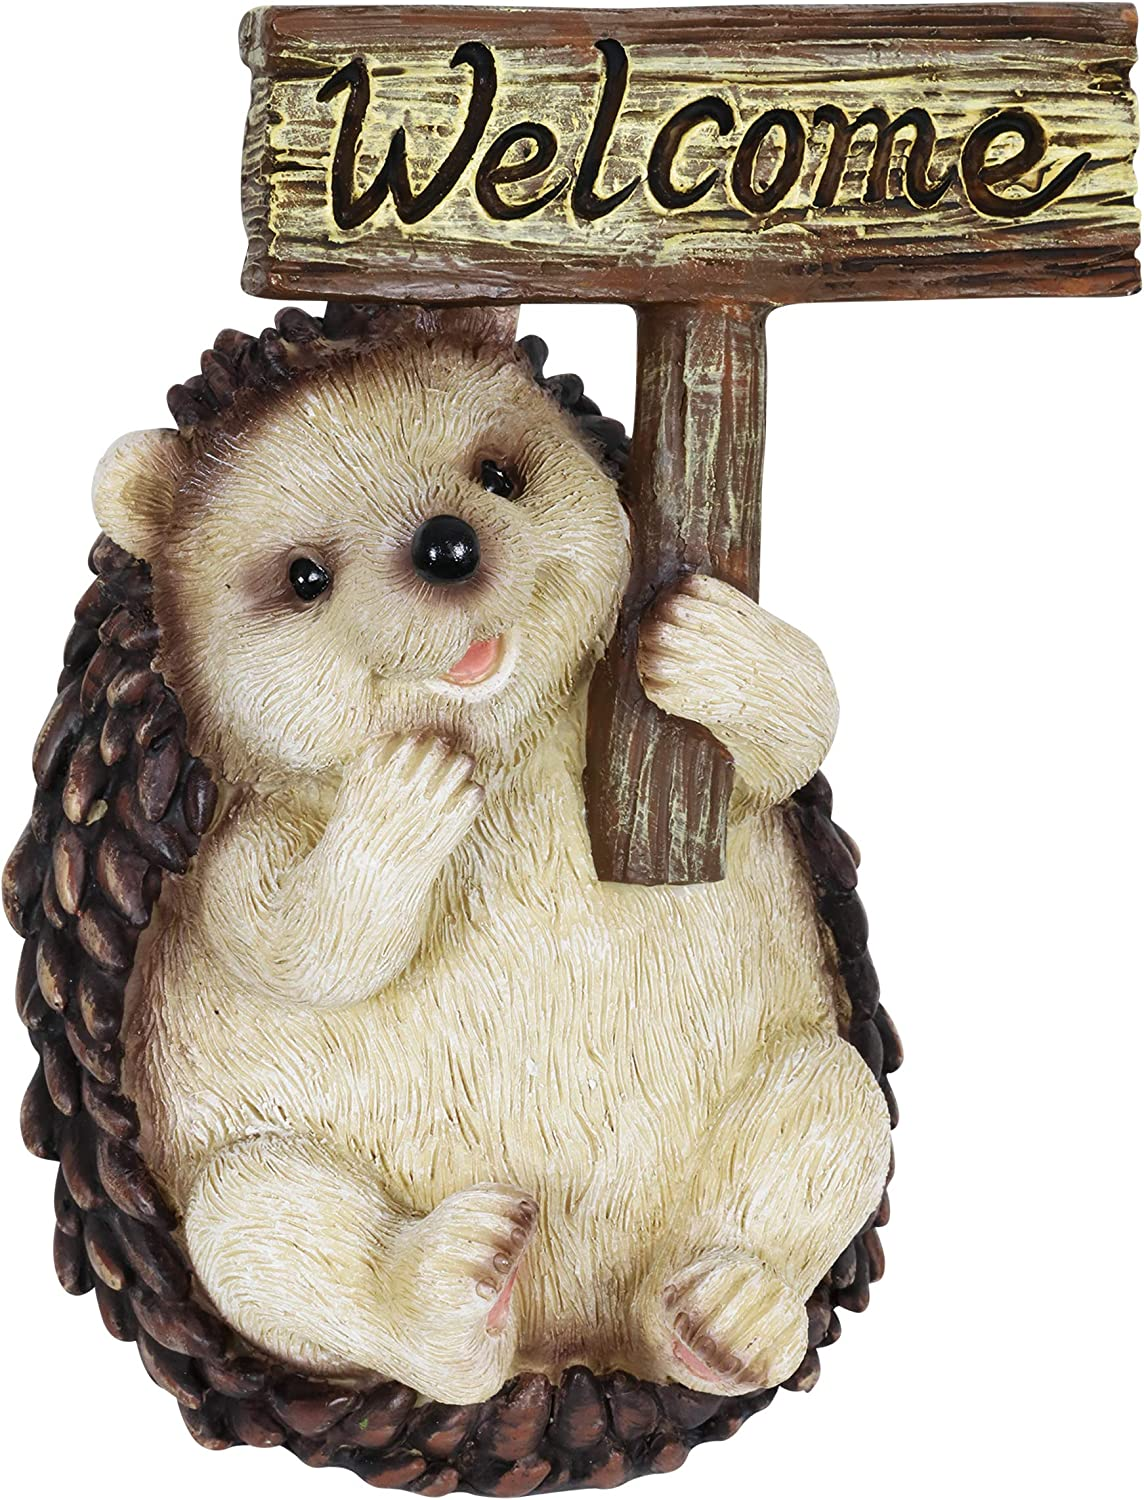 Exhart Hedgehog Holding a Recommended Welcome Sign Cute Garden Manufacturer regenerated product Art Statue